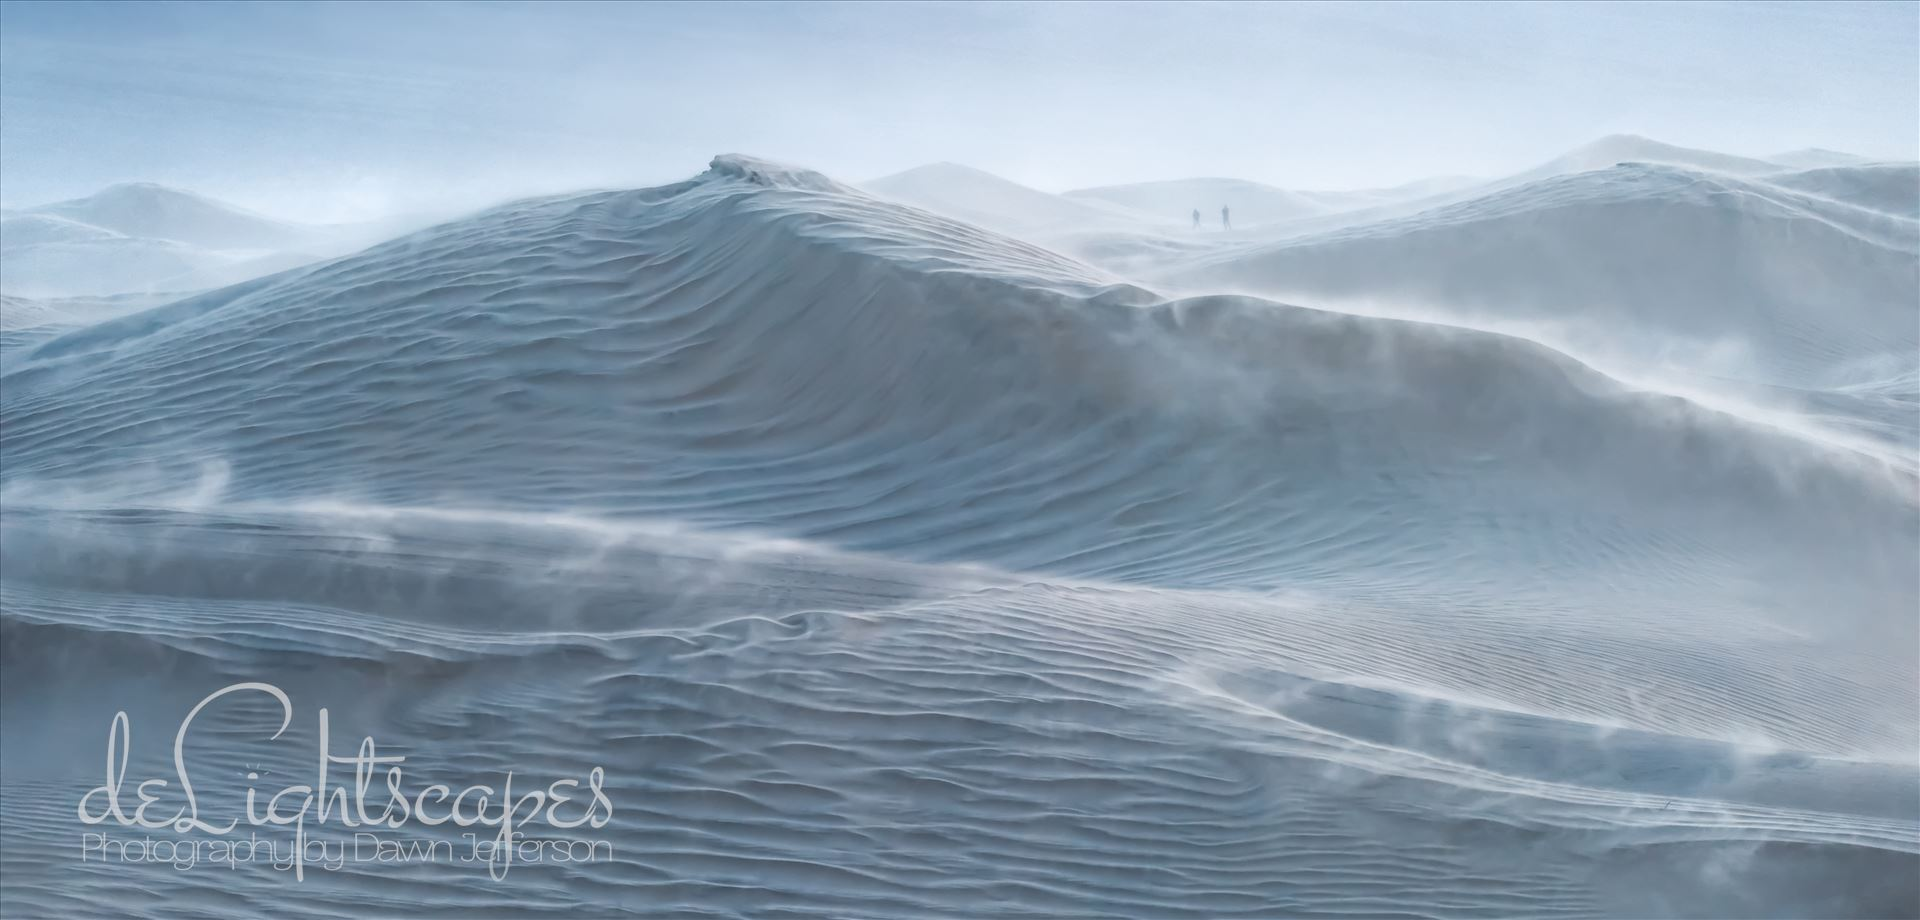 Rough Seas - Mesquite Dunes at blue hour during a wind storm with 30 mph sustained winds and 50-60 mph gusts. The dunes looked like a storm tossed sea especially the large dune which appears to be a cresting wave and the blowing sand is reminiscent of sea spray. by Dawn Jefferson